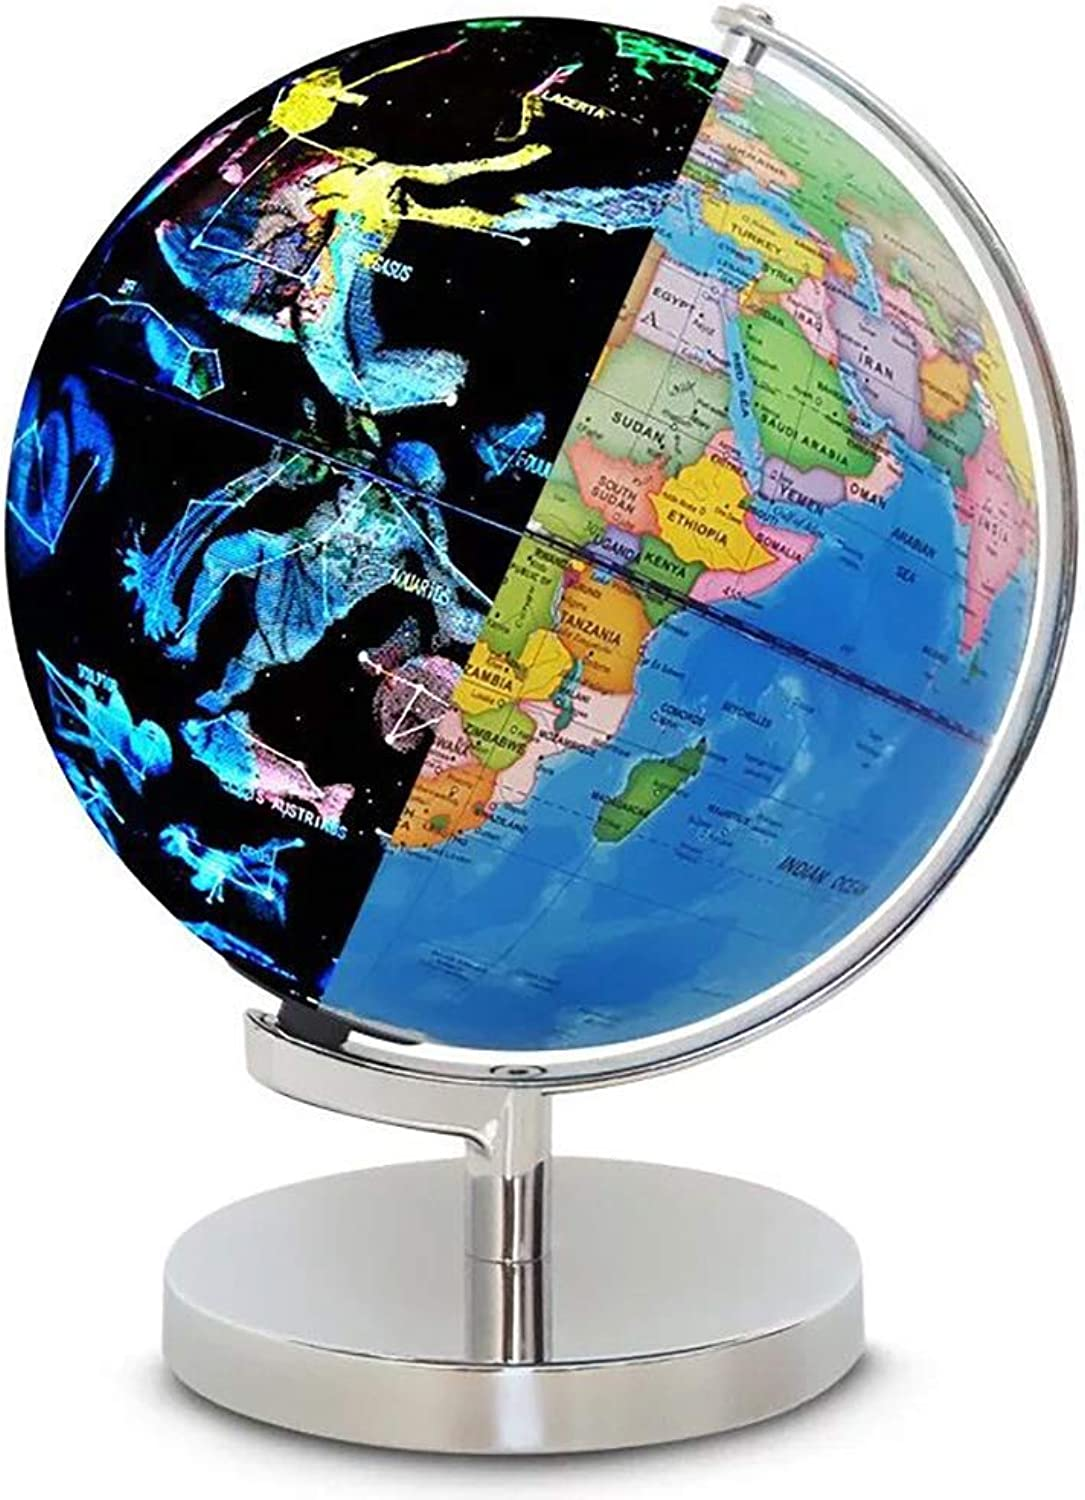 Admier Weltkugel mit Licht 2 in 1 Globus Erde und Sternbilder LED-Lampen Nachtansicht USB-Ladelampe Educational World Globe für Home Office Dekoration